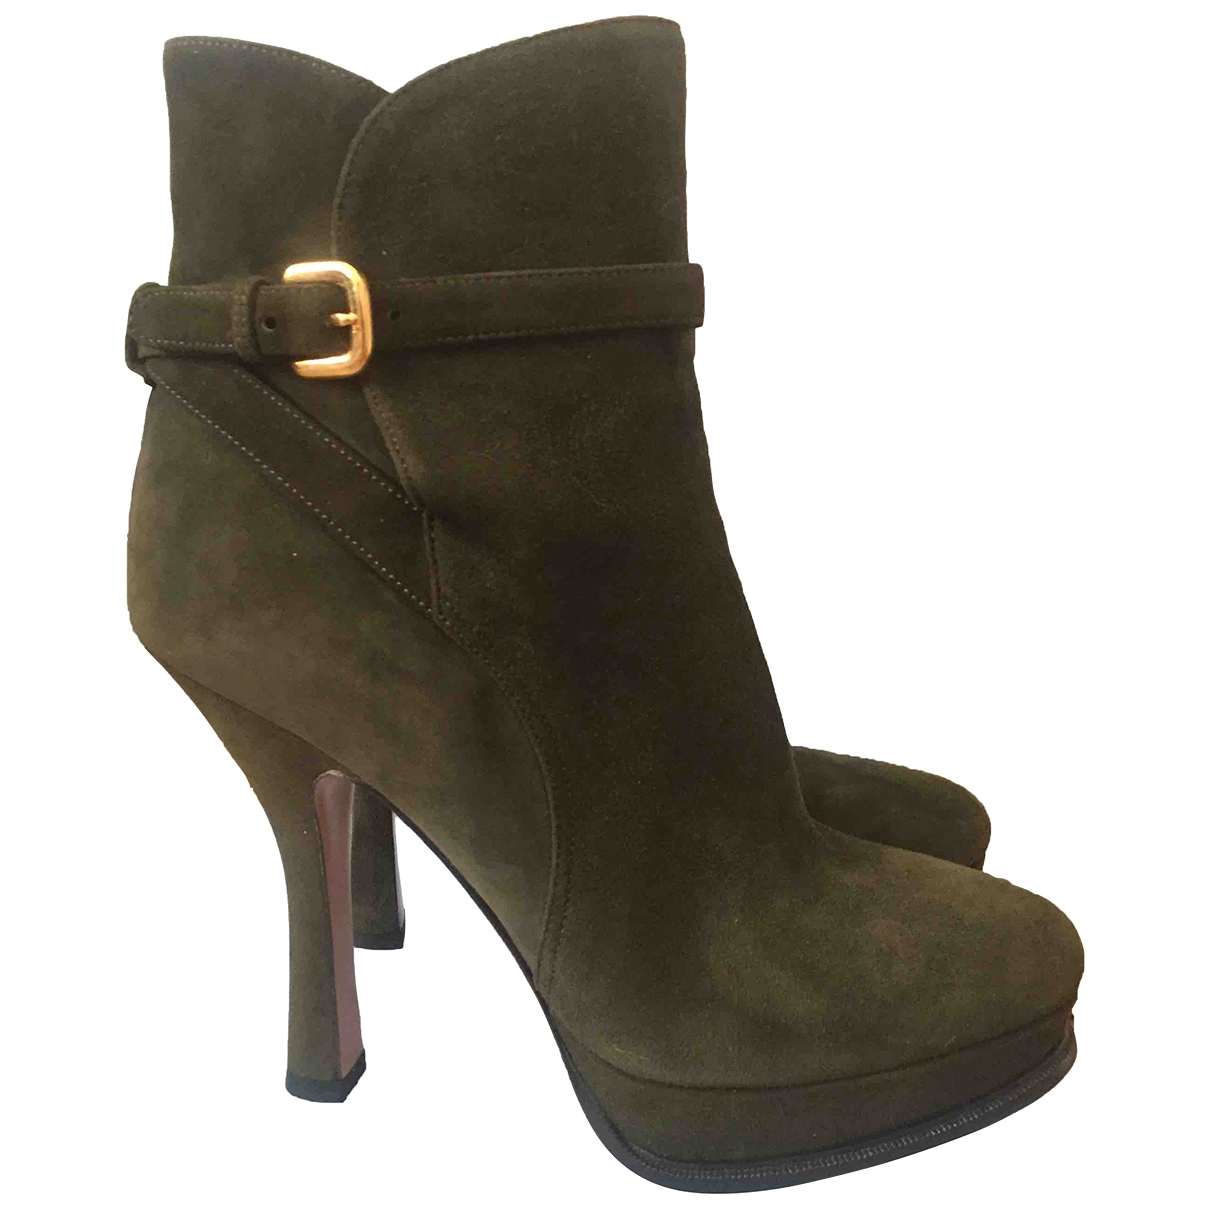 Prada \N Khaki Suede Ankle boots for Women 38 IT